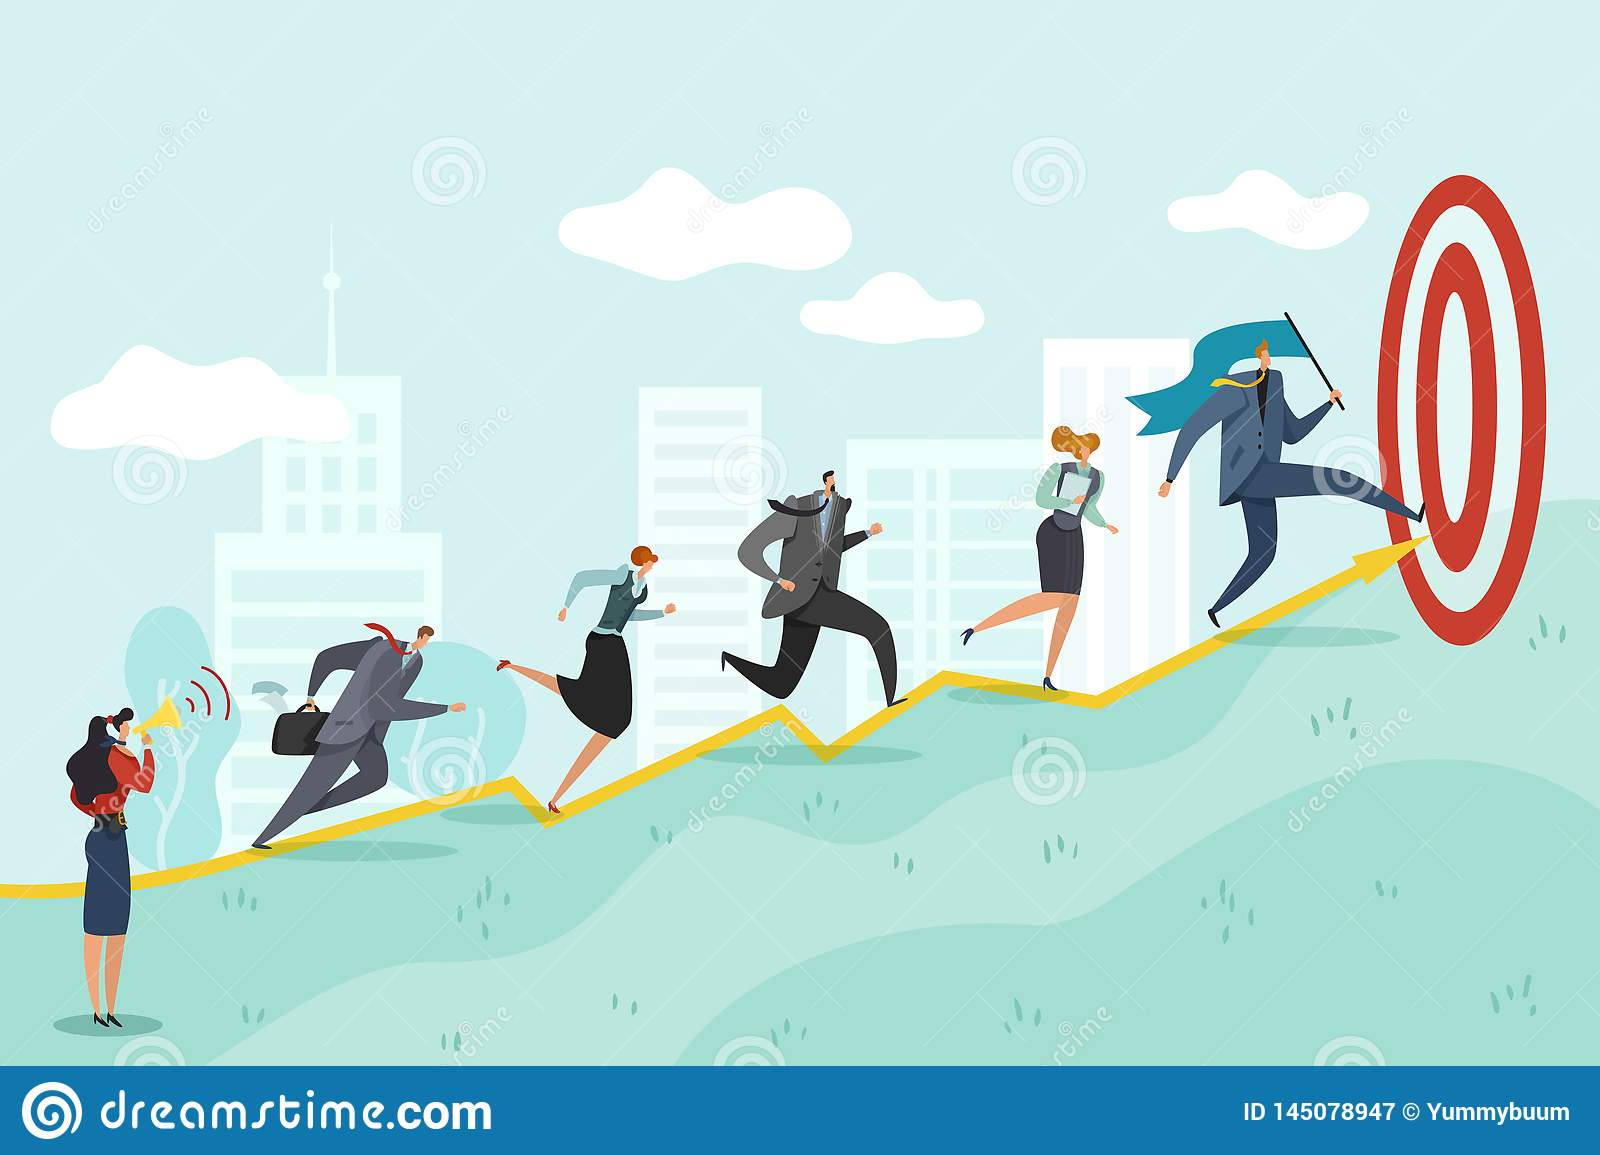 Running to target. Business persons racing to success corporate professional reaching, ambition goals vector concept